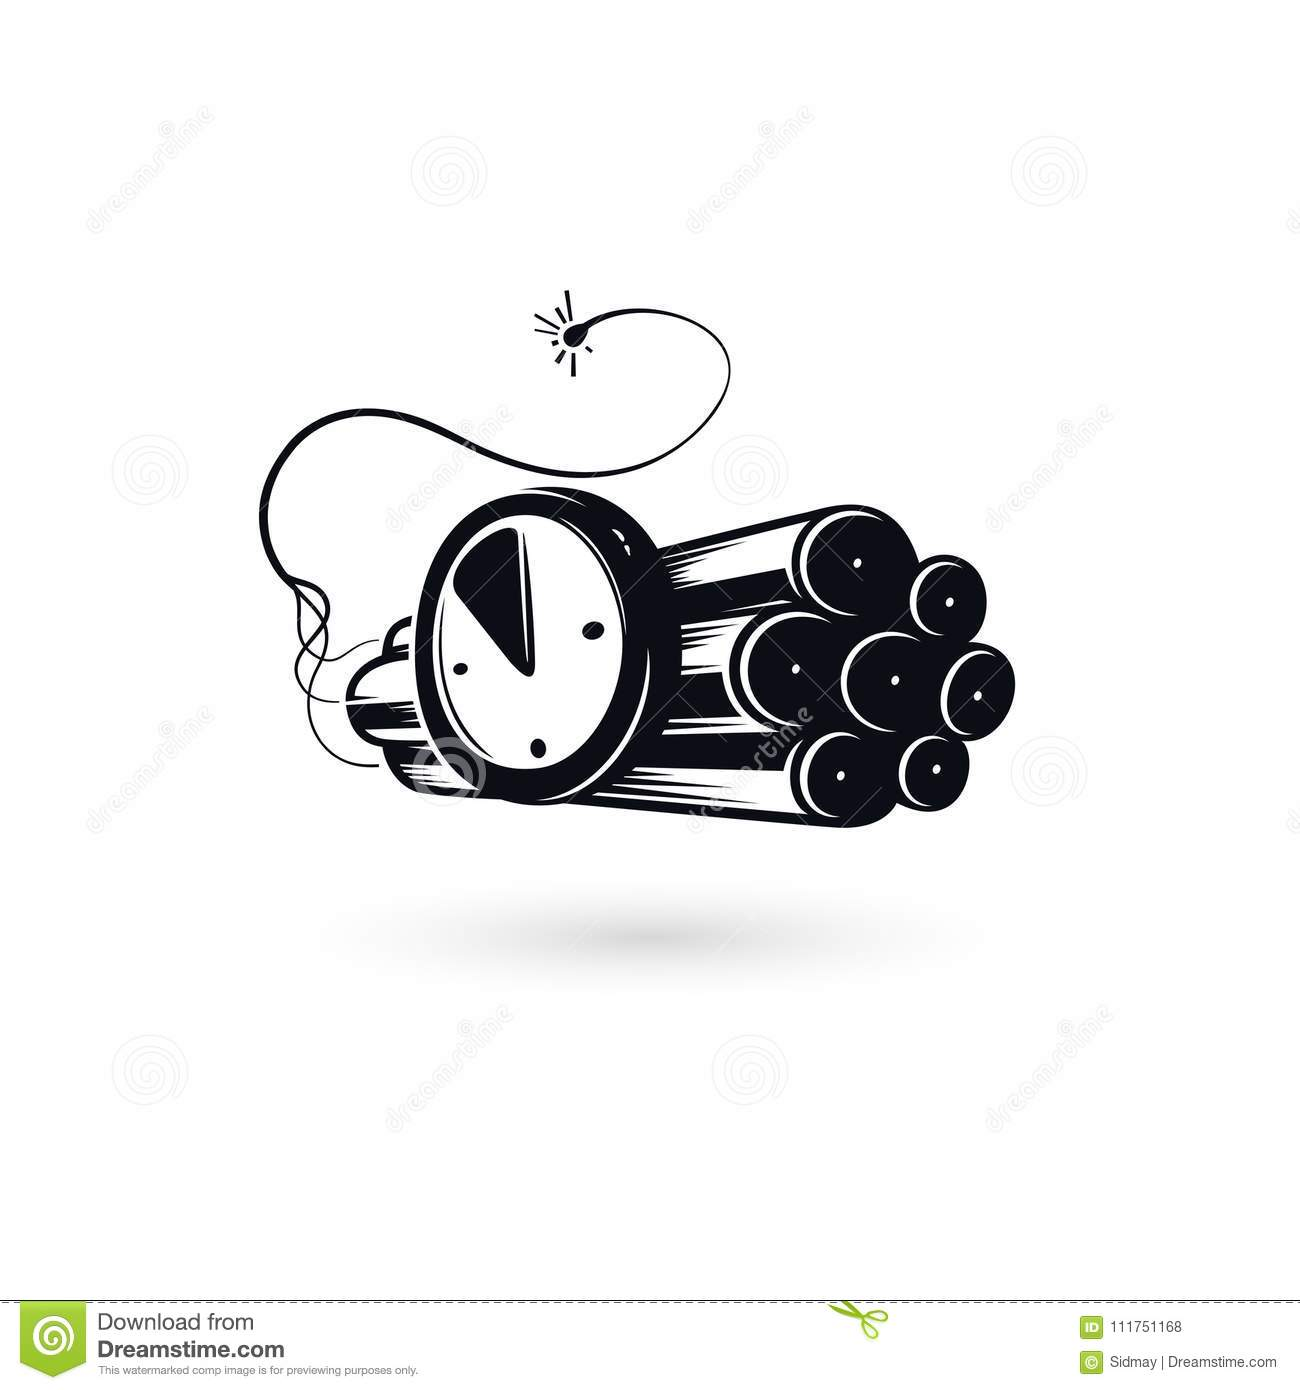 Deadline Concept Logo Countdown Vector Emblem Stock Fuse Box Icons Dynamite Icon With Watch Timer And Burning Large Explosive Charge Tnt Symbol